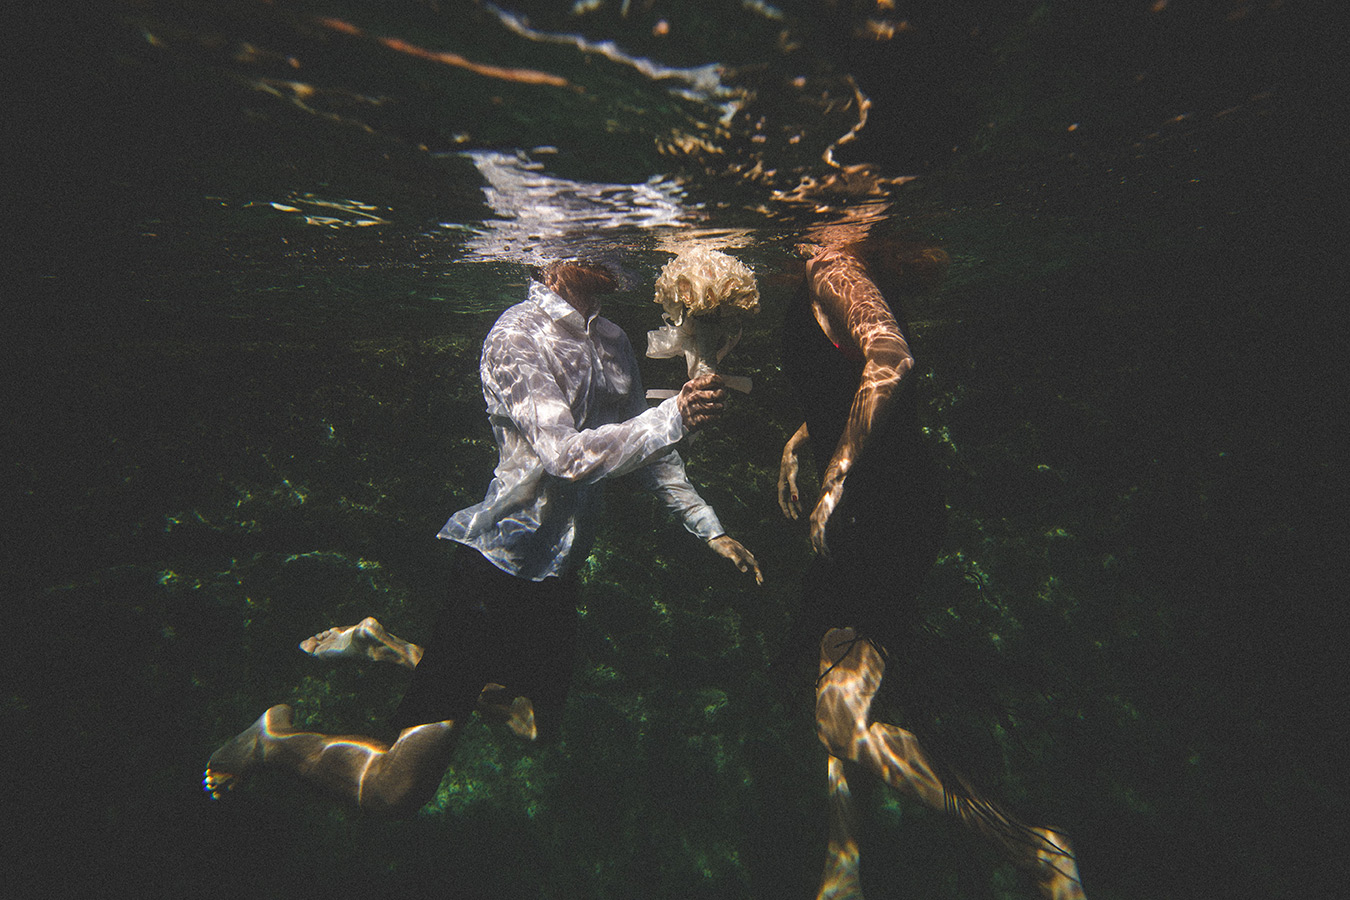 One of a set of images taken at this chic destination Wedding of Jenna & Nick. The stylish old town of Dubrovnik, Croatia.  Underwater image of the couple.  Photography by Matt Porteous